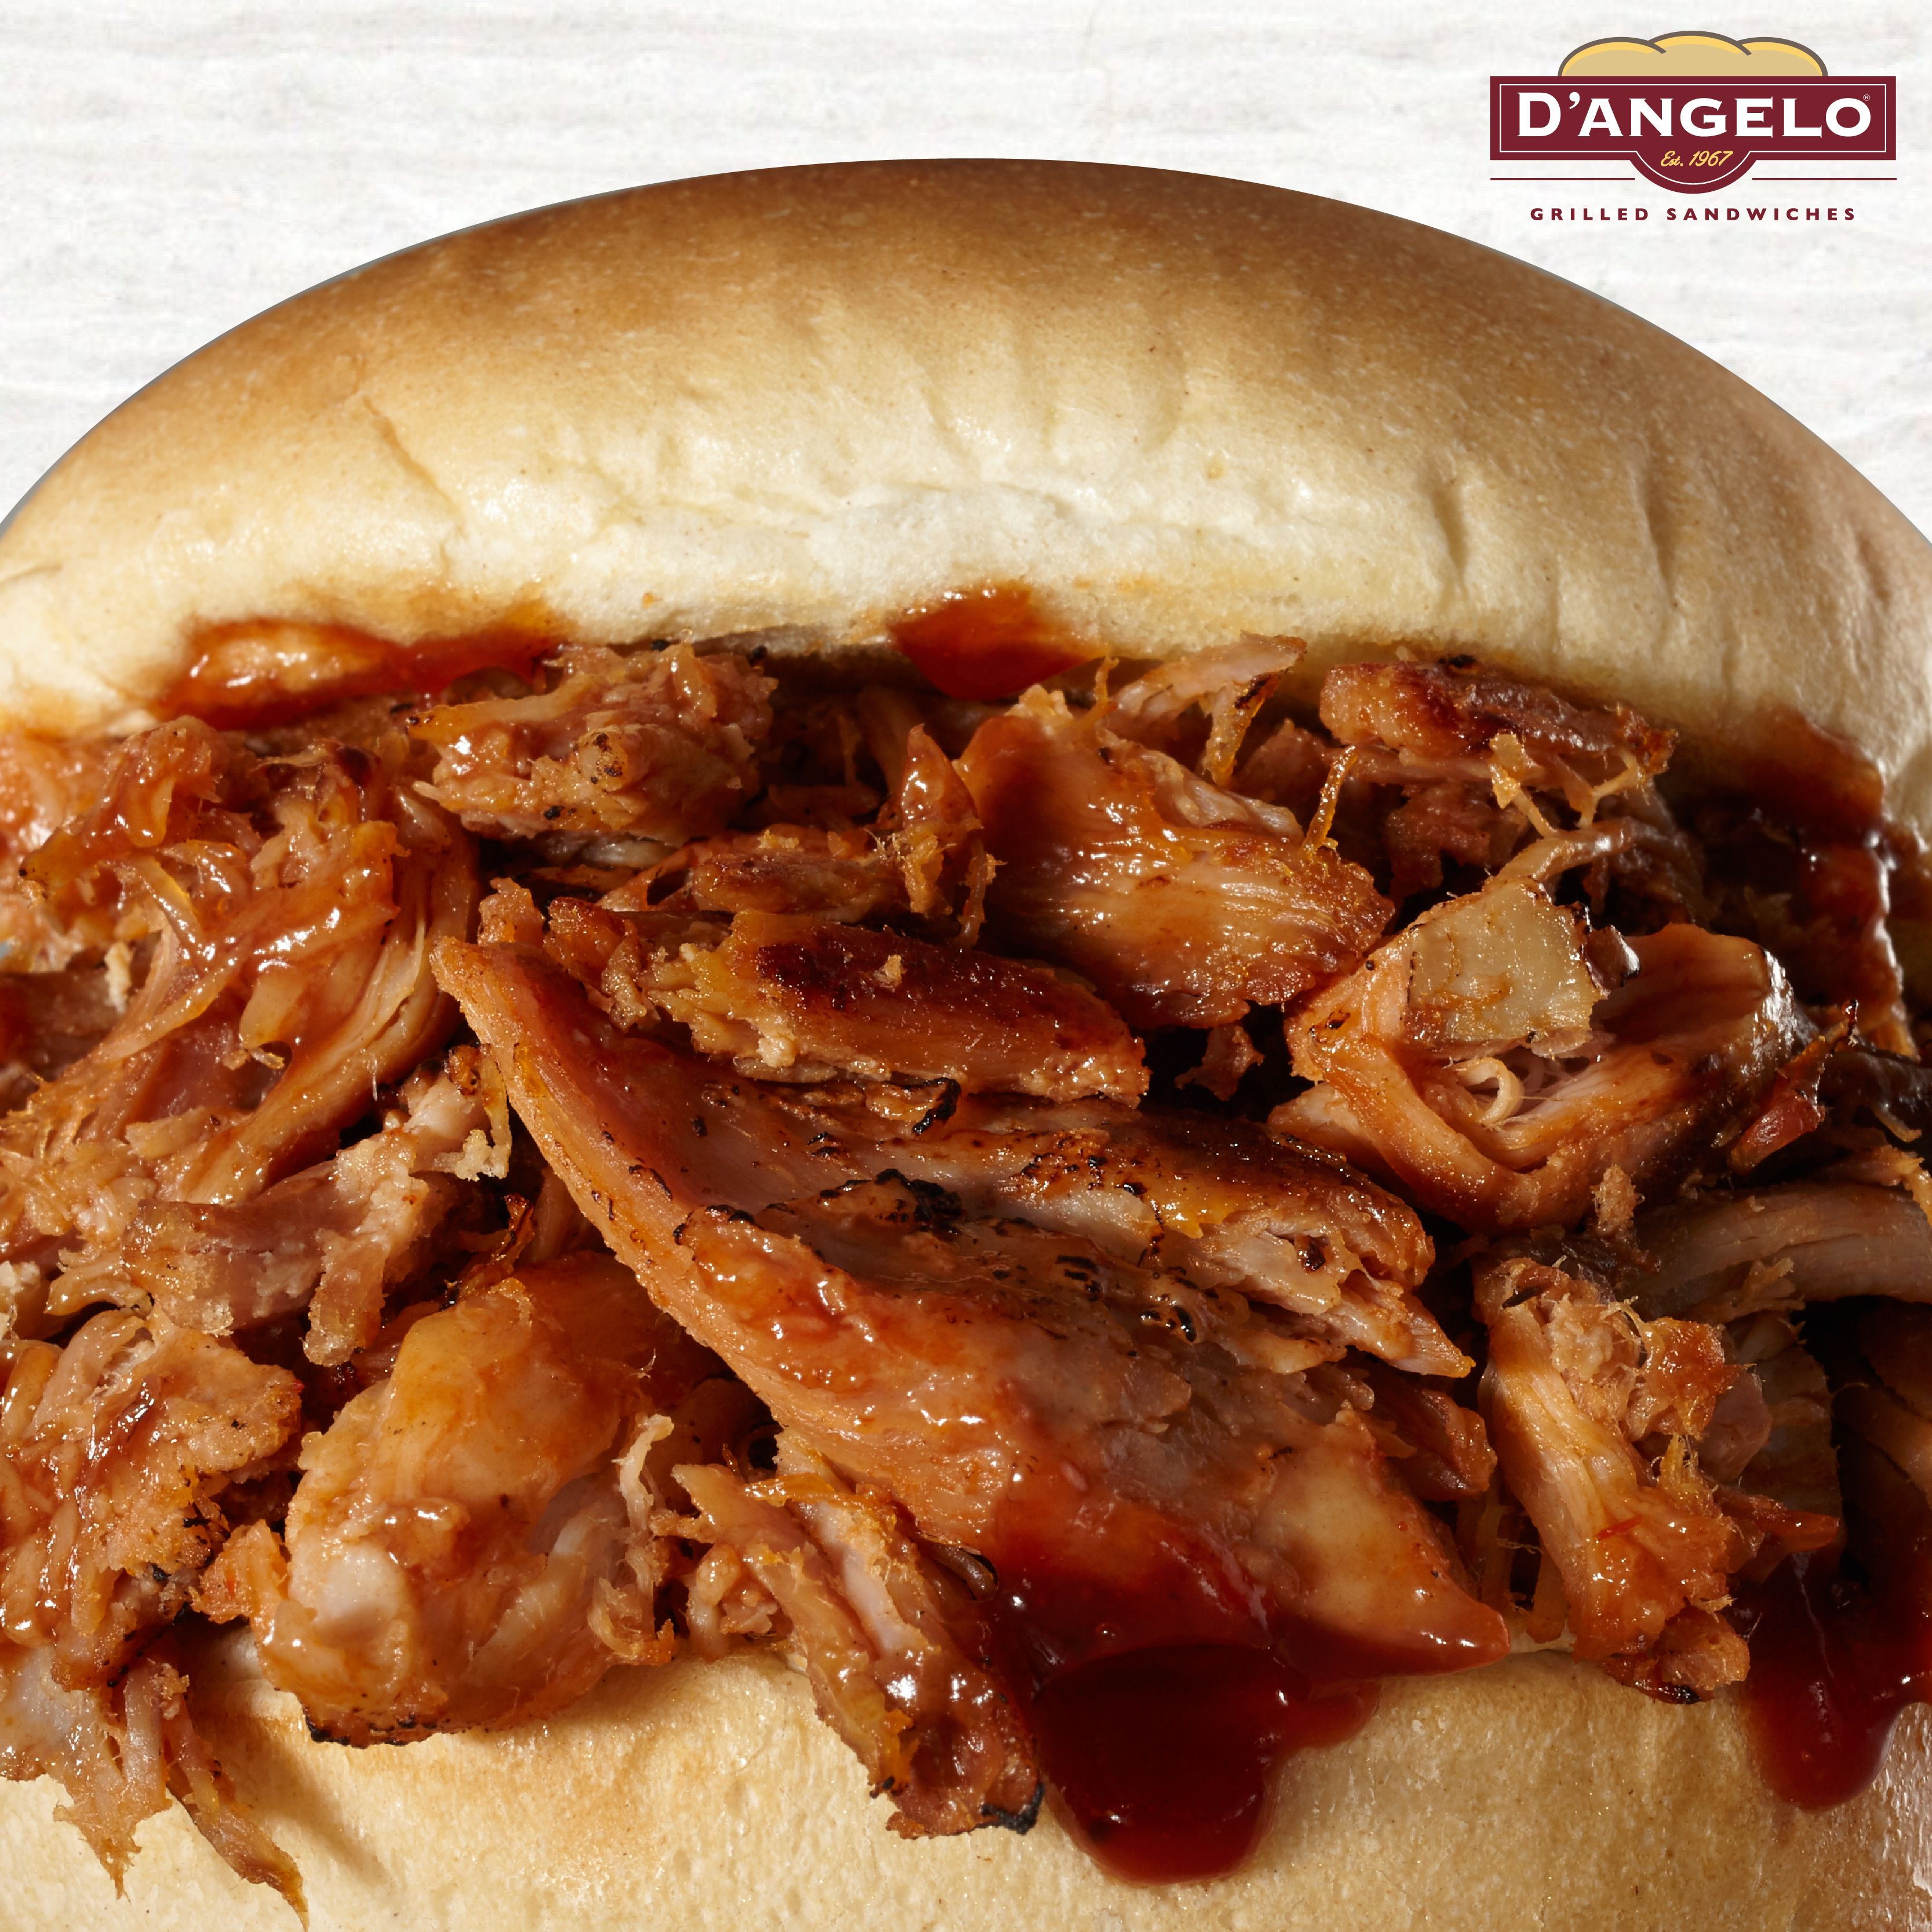 photograph relating to D Angelo Coupons Printable known as BBQ Pulled Pork. The style of summertime is right here at DAngelo